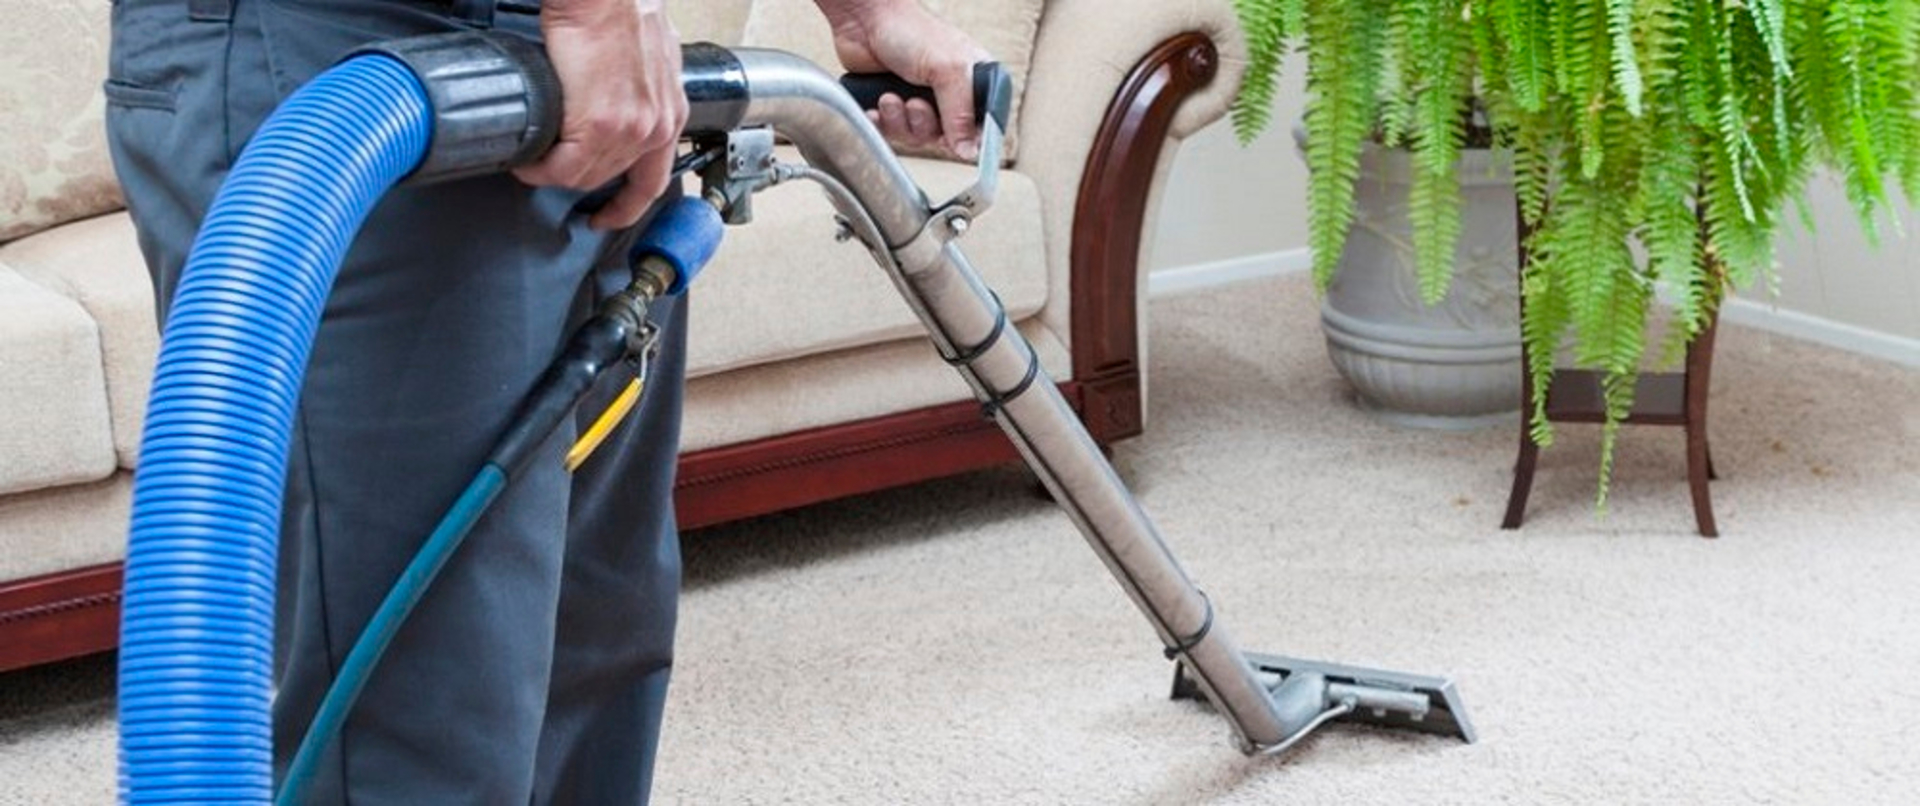 What is Lake forest carpet cleaning? – Green Carpet Cleaning image